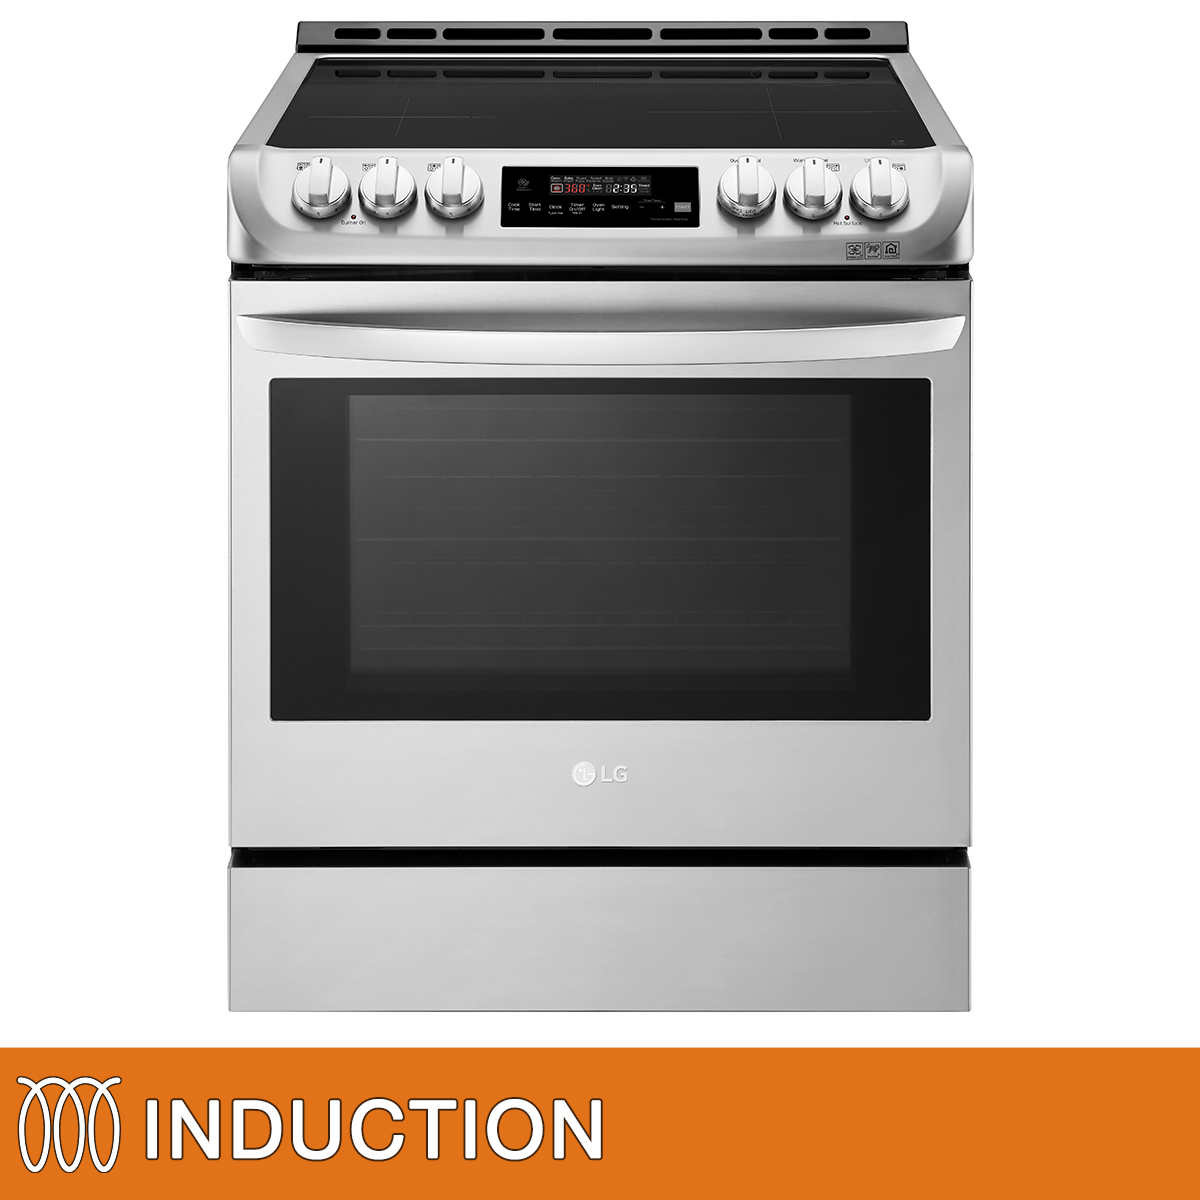 LG 30 in  Induction Slide-in Range with ProBake Convection and EasyClean  Technology